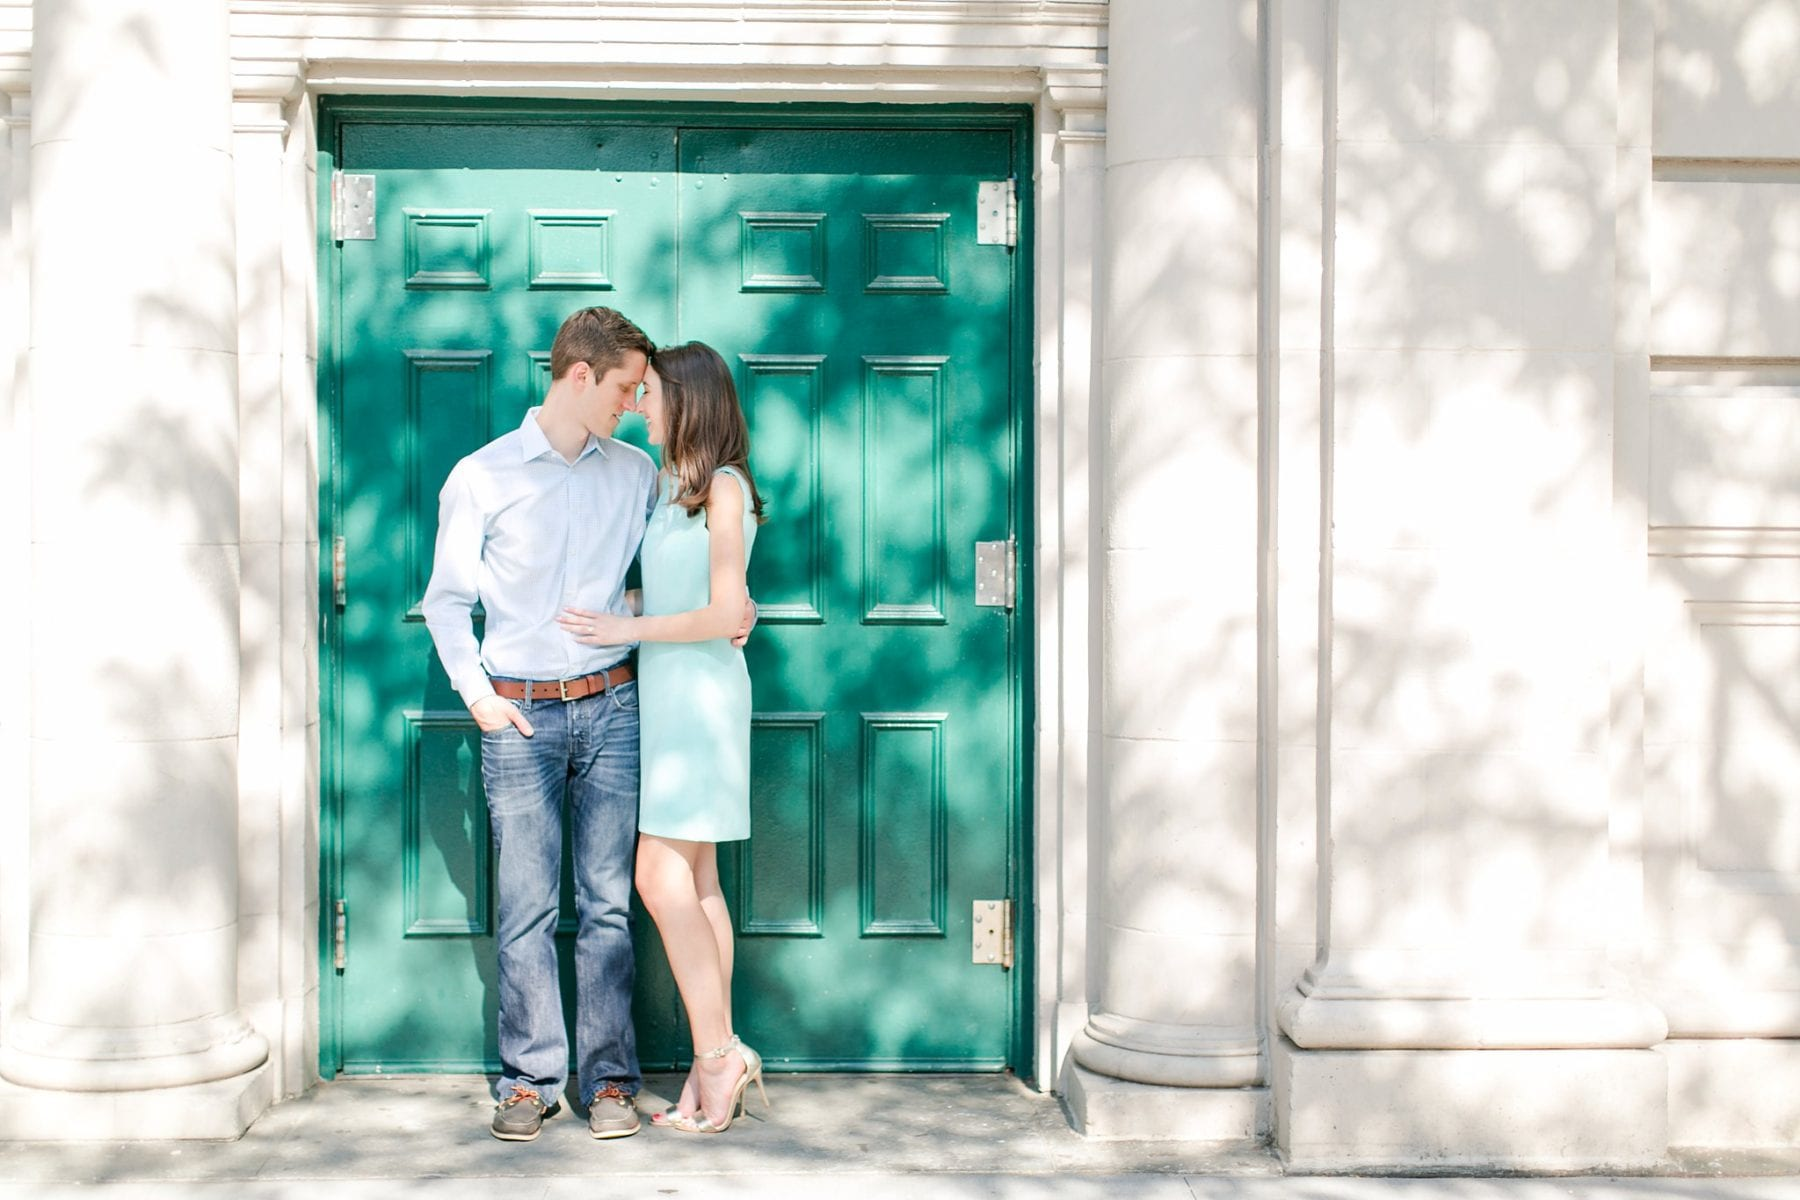 West Village Central Park Engagement Photos NYC Wedding Photographer Megan Kelsey Photography-44.jpg